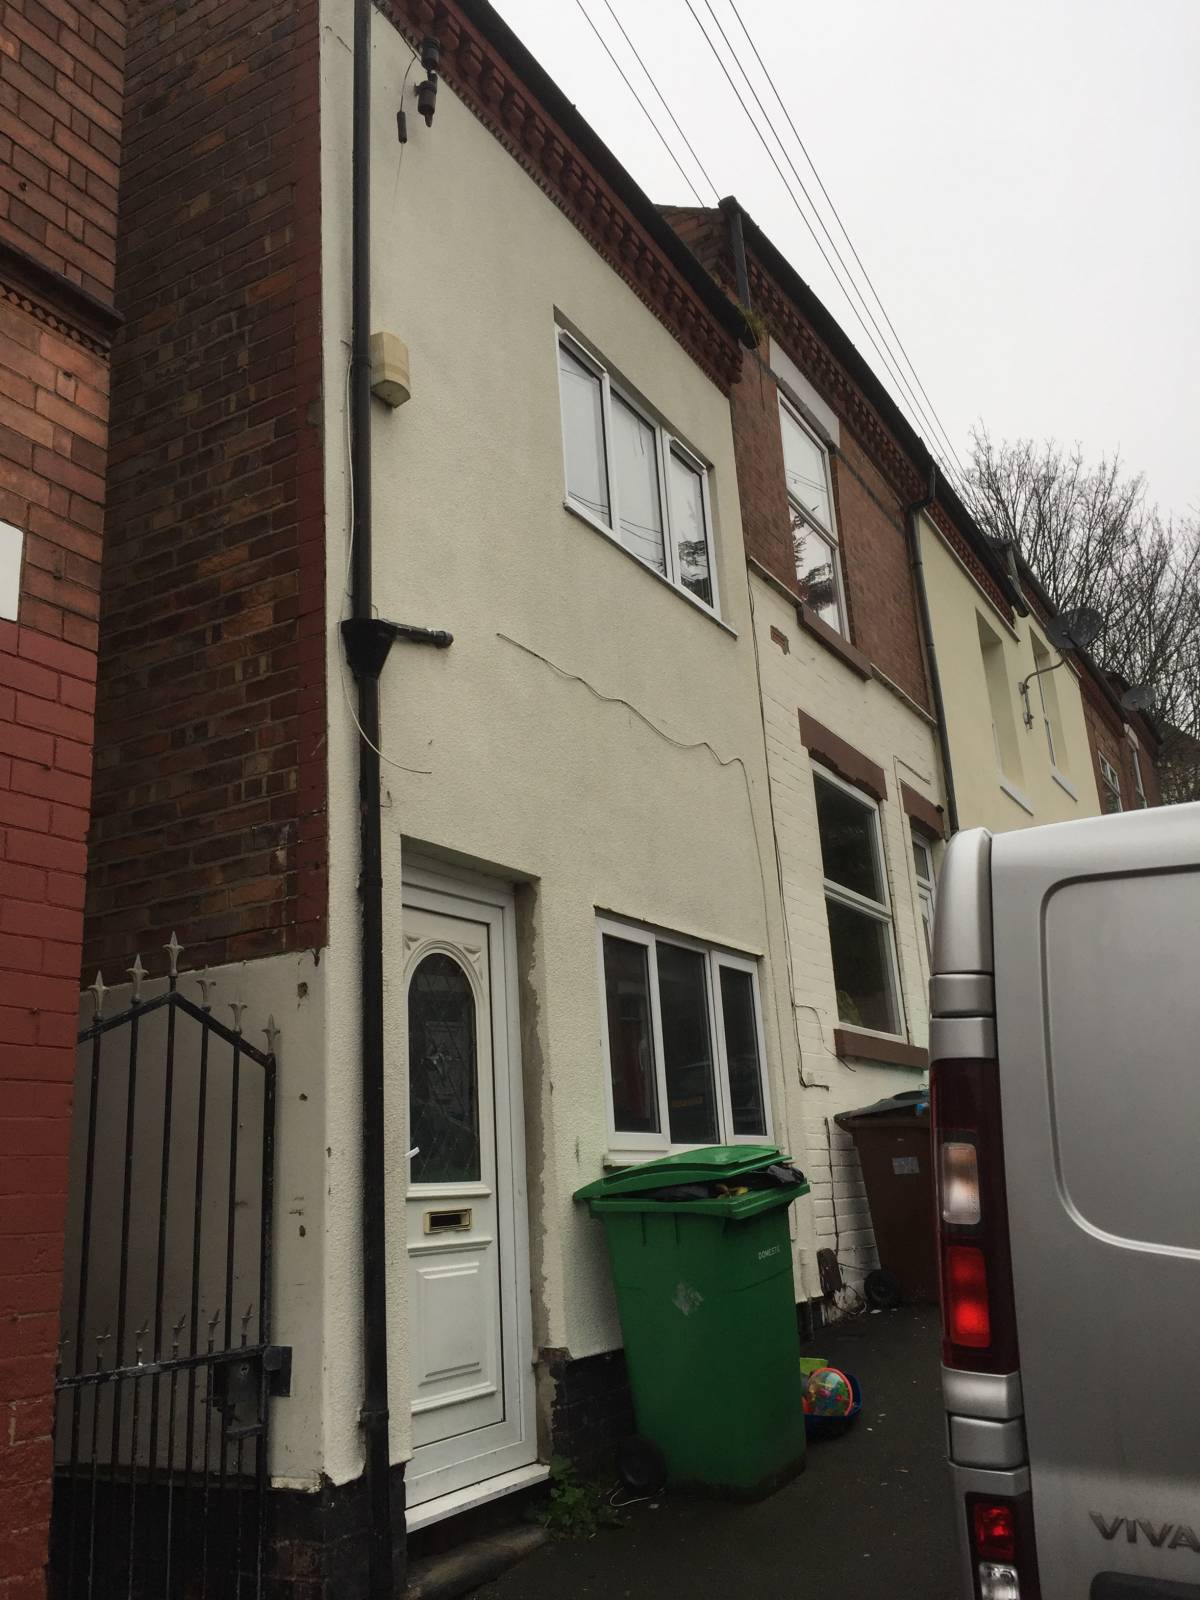 2 bedroom End Terraced. Private Yard. Large Rooms